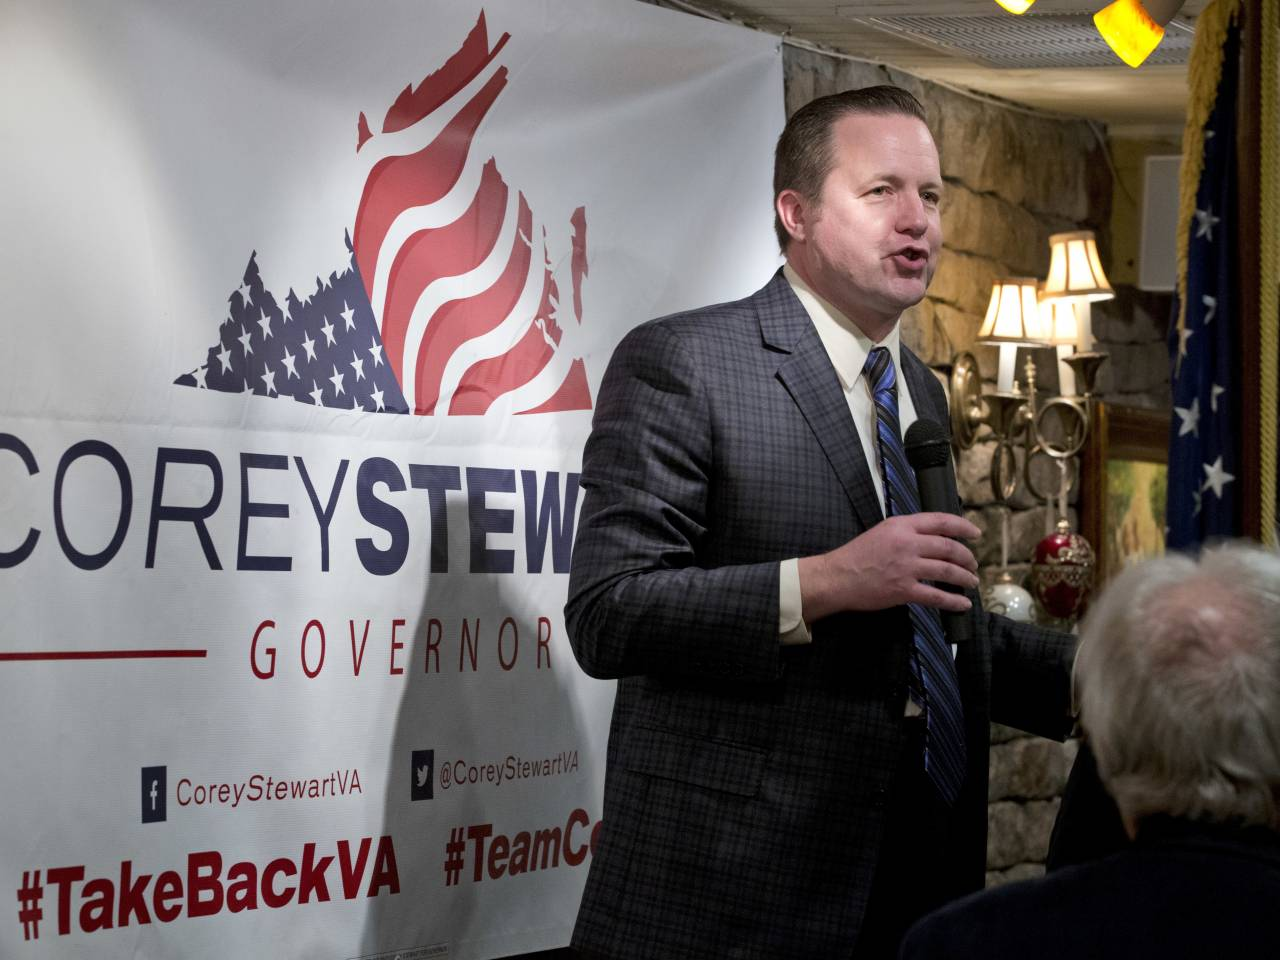 Trump Ultra Corey Stewart Throws a Scare Into Conventional Republicans Everywhere